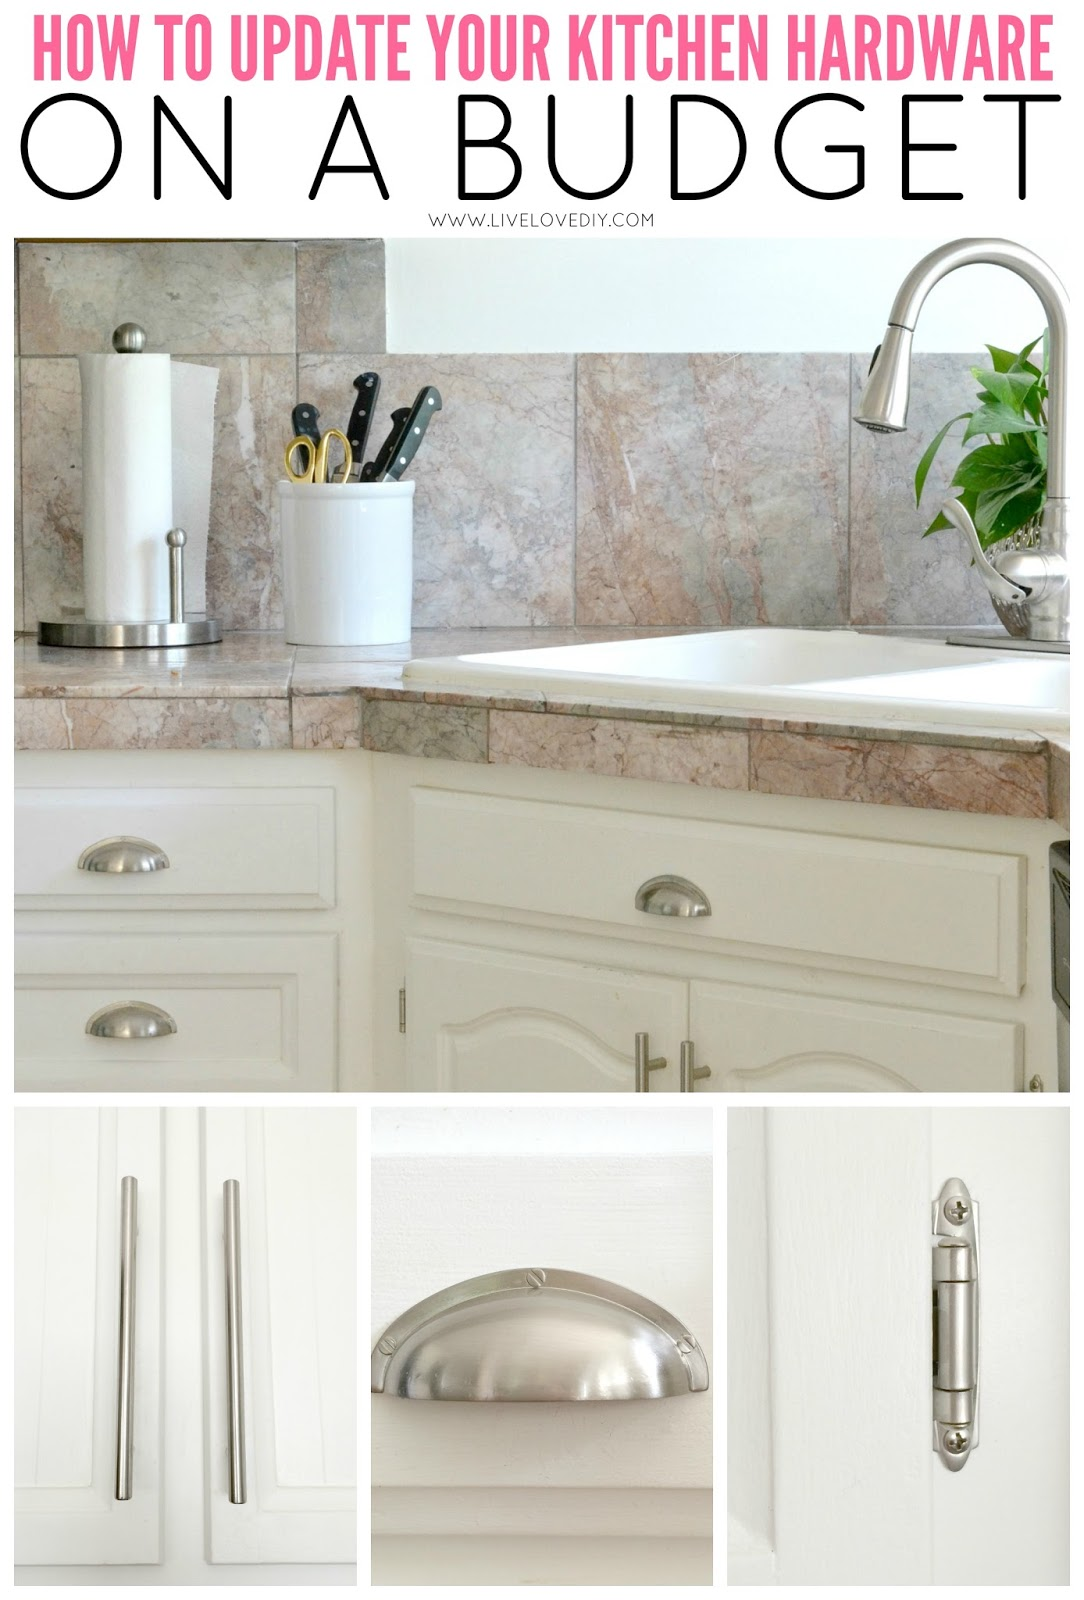 LiveLoveDIY How To Paint Kitchen Cabinets in 10 Easy Steps